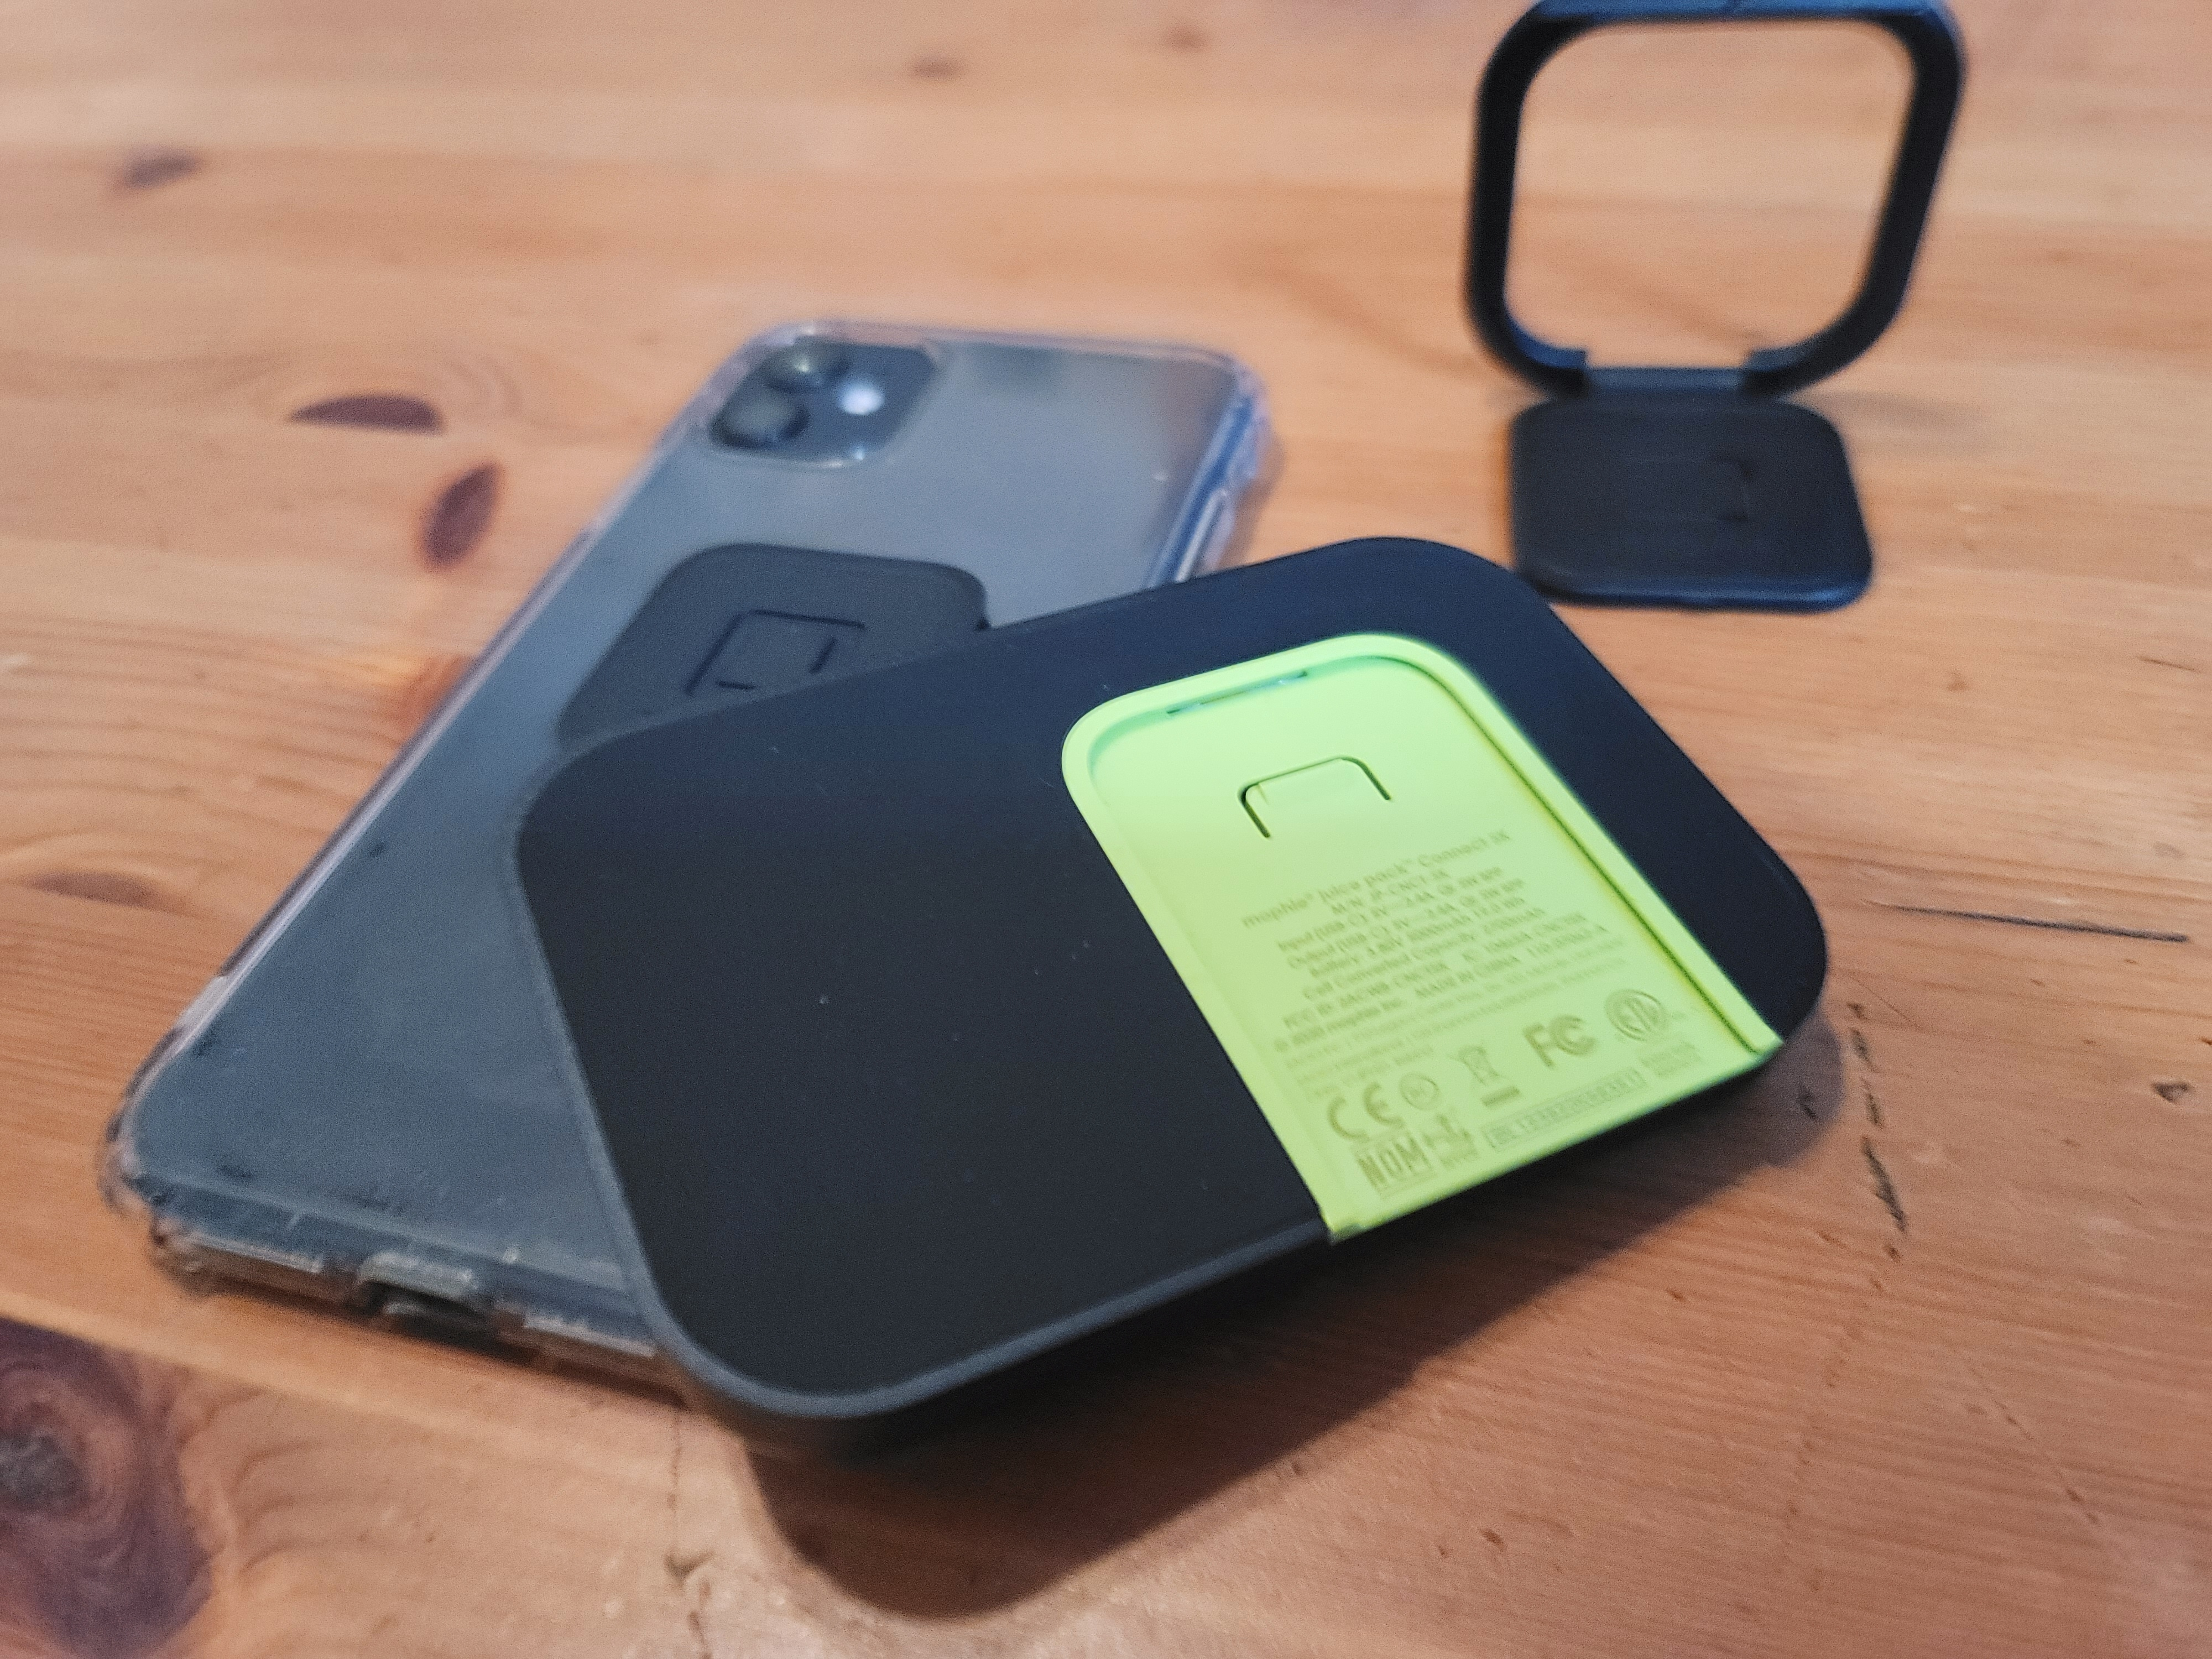 Hands On With Mophie S New Modular Smartphone Battery Case Techcrunch Double your iphone's battery life with this battery sled. modular smartphone battery case